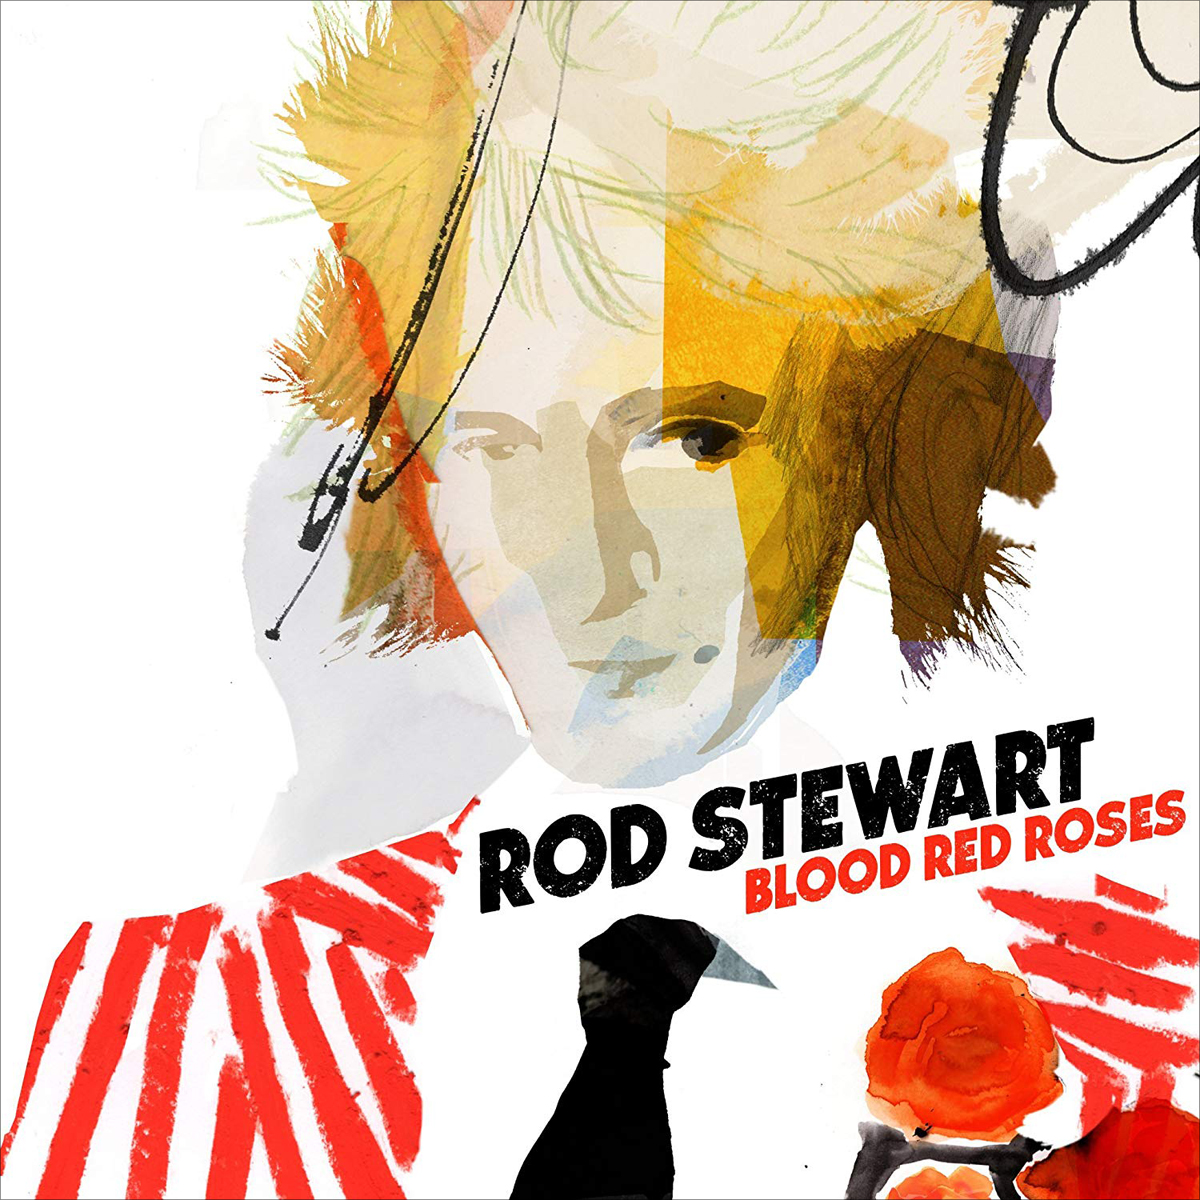 Род Стюарт Rod Stewart. Blood Red Roses (2 LP) in cold blood